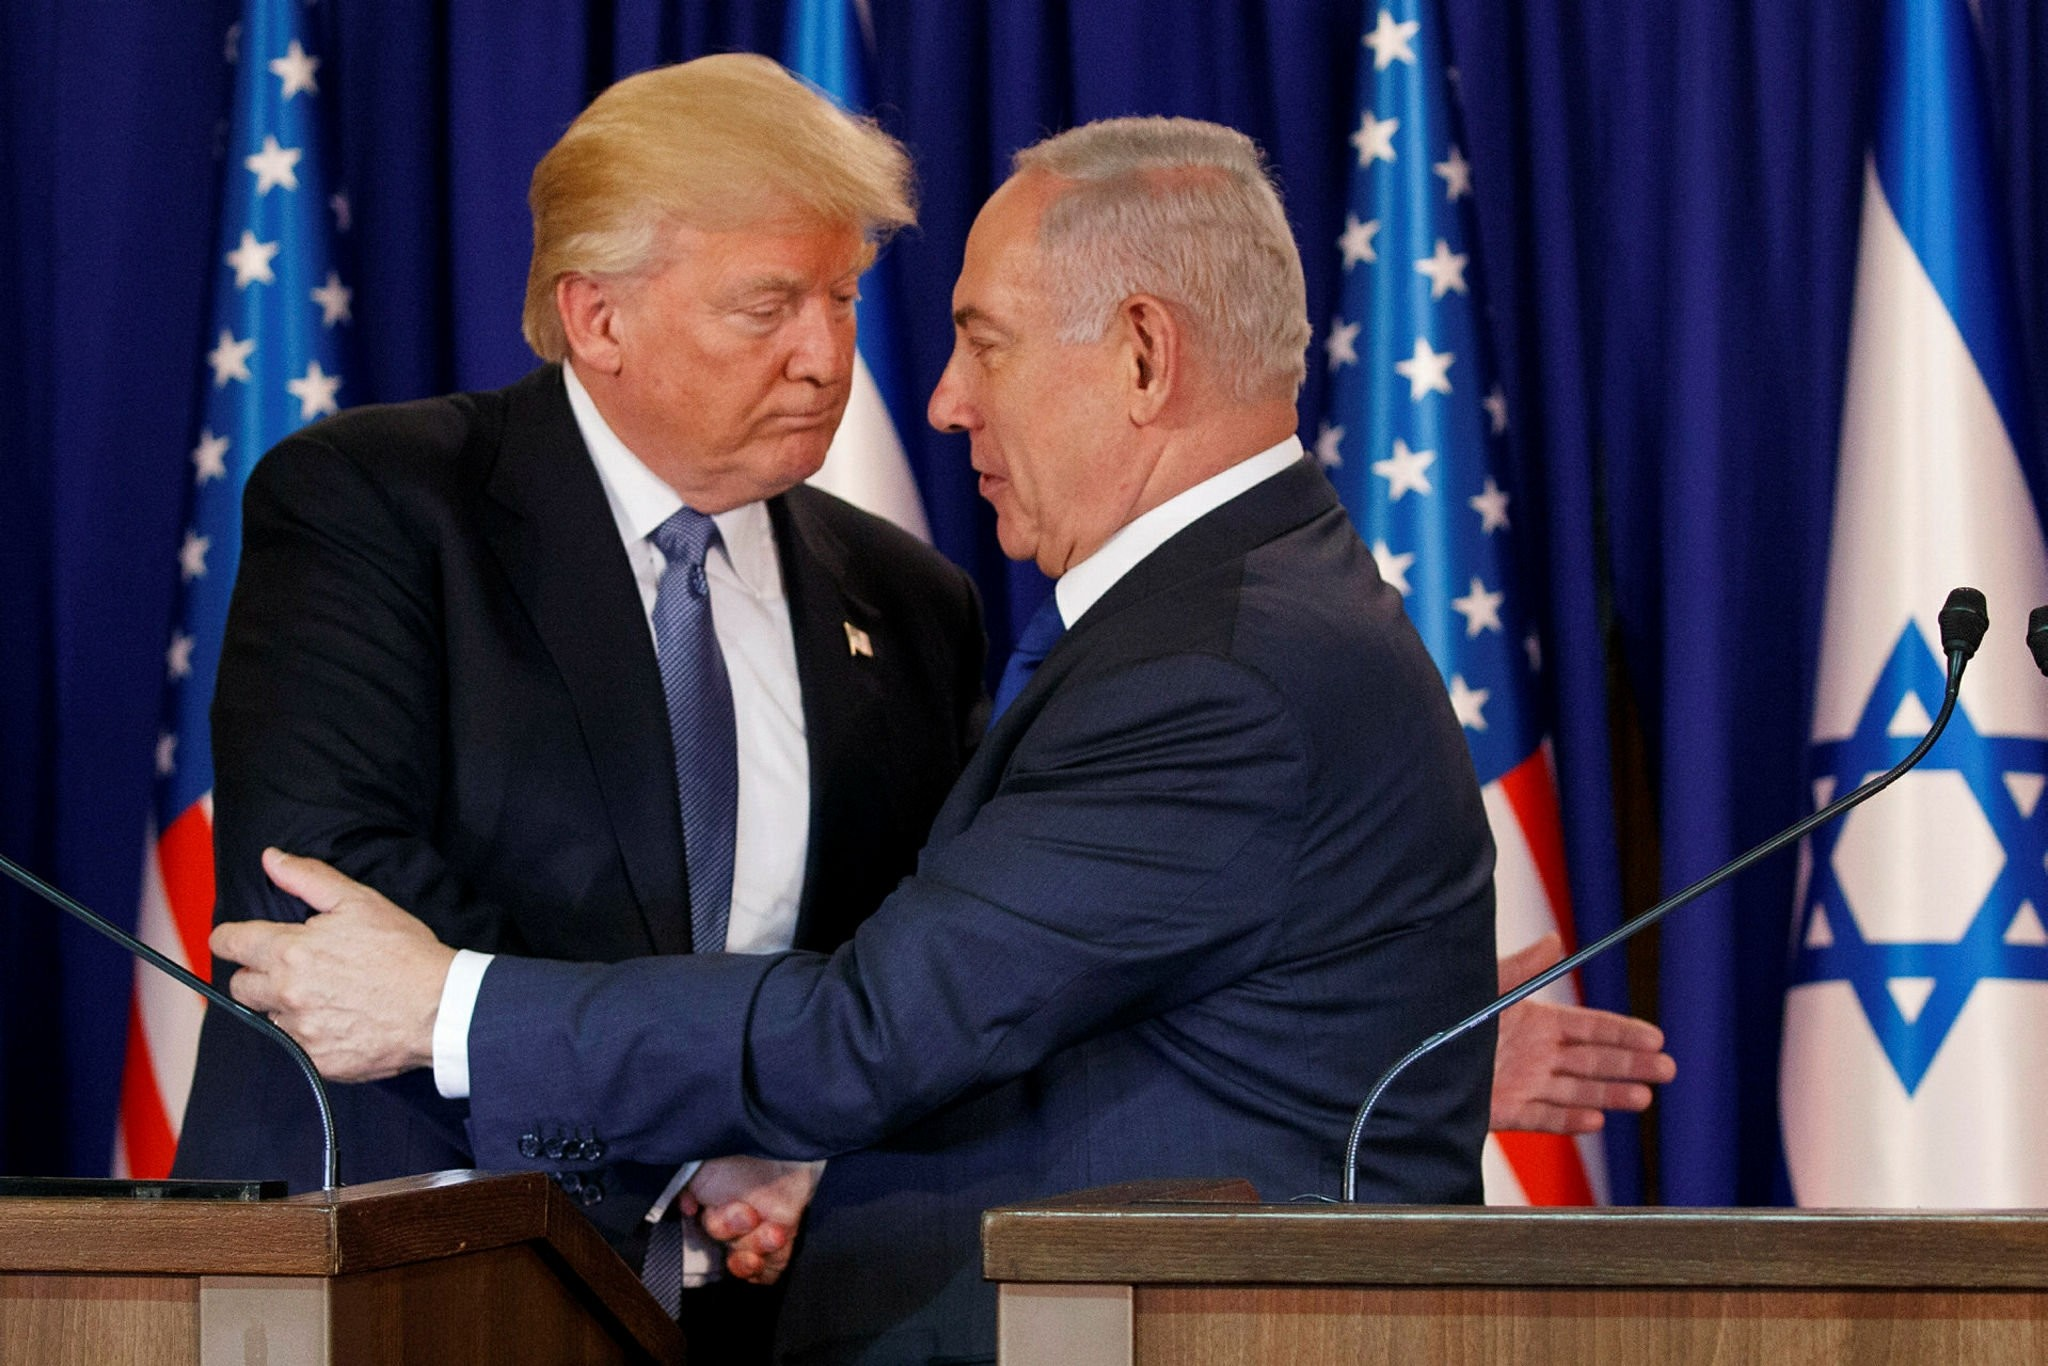 U.S. President Trump (L) shakes hands with Israeli Prime Minister Netanyahu after making a joint statement, Jerusalem, May 22, 2017.